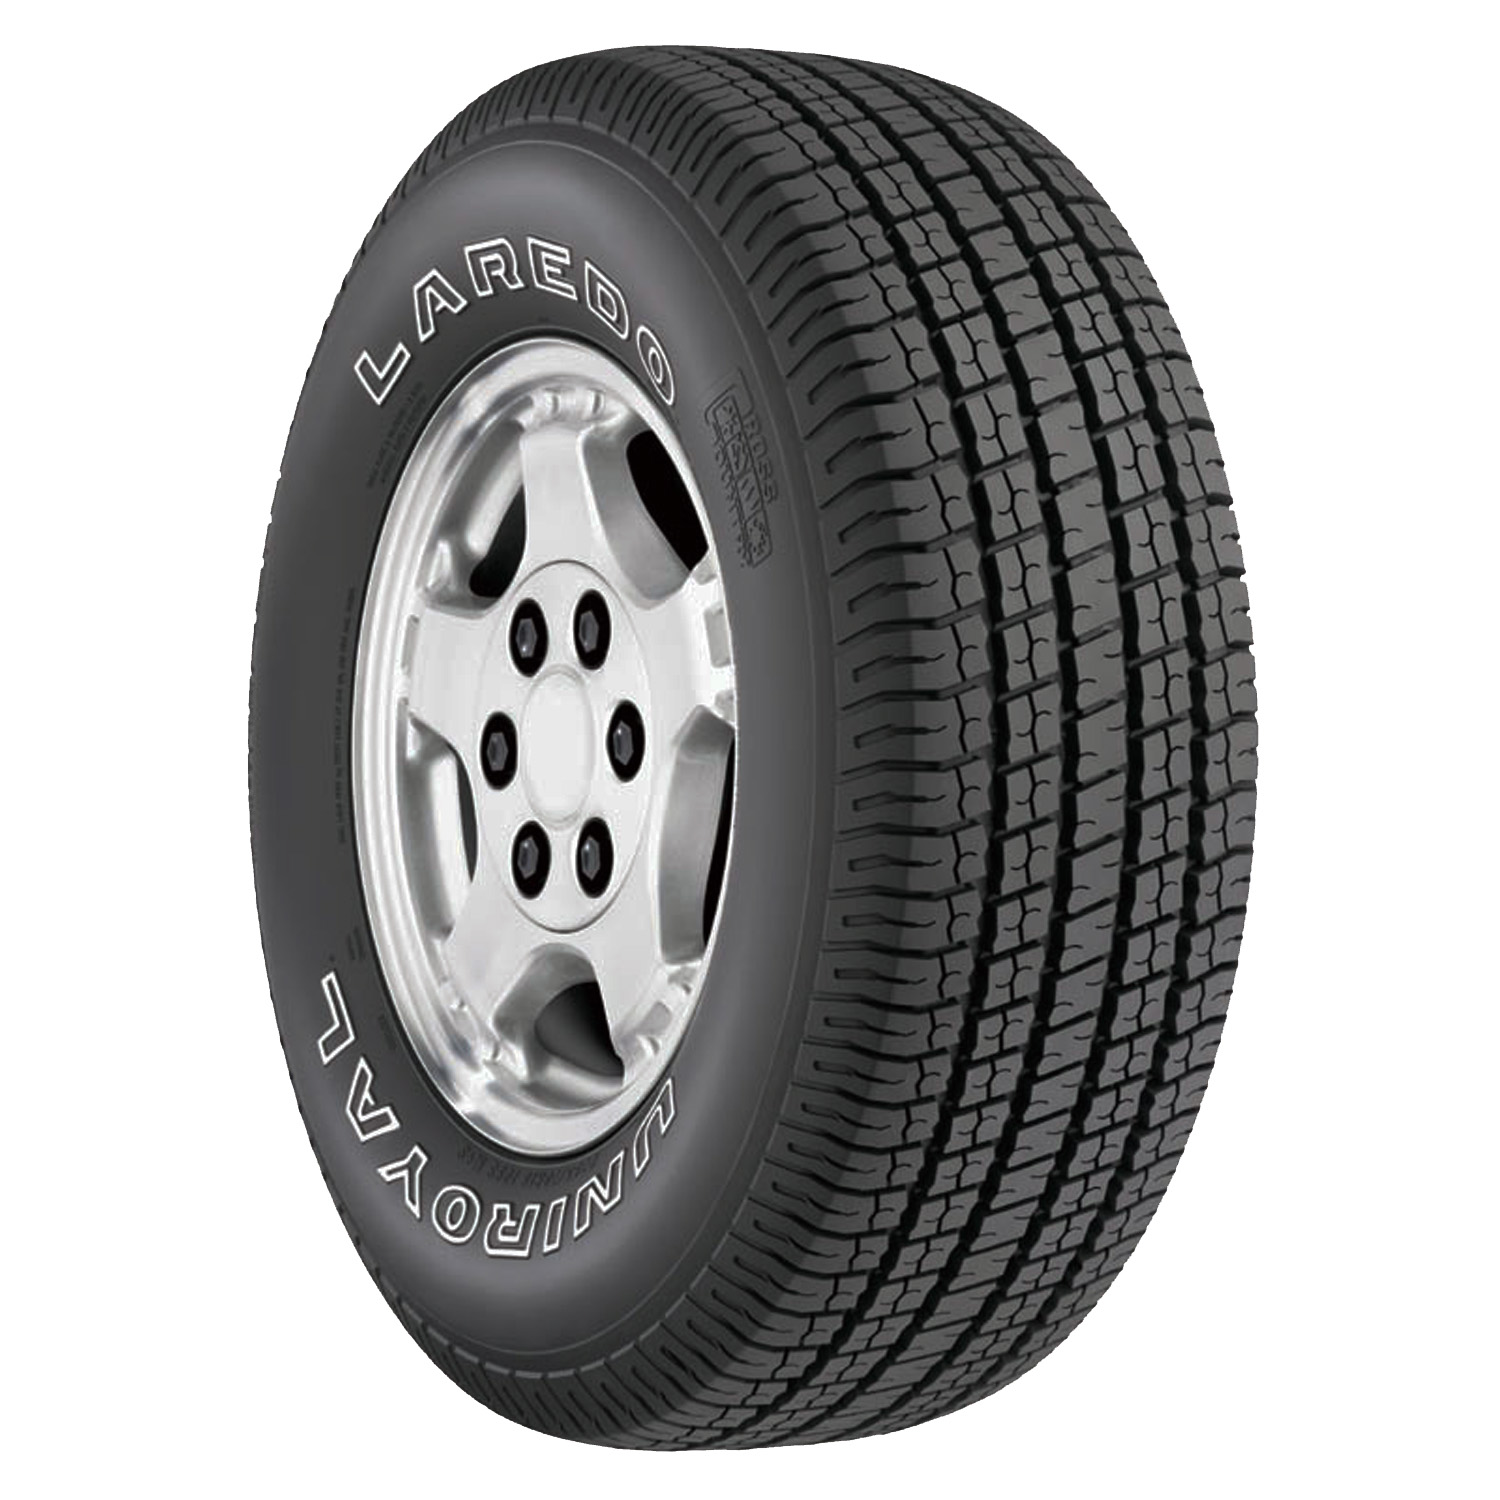 Laredo Cross Country - P235/75R16 109S ORWL